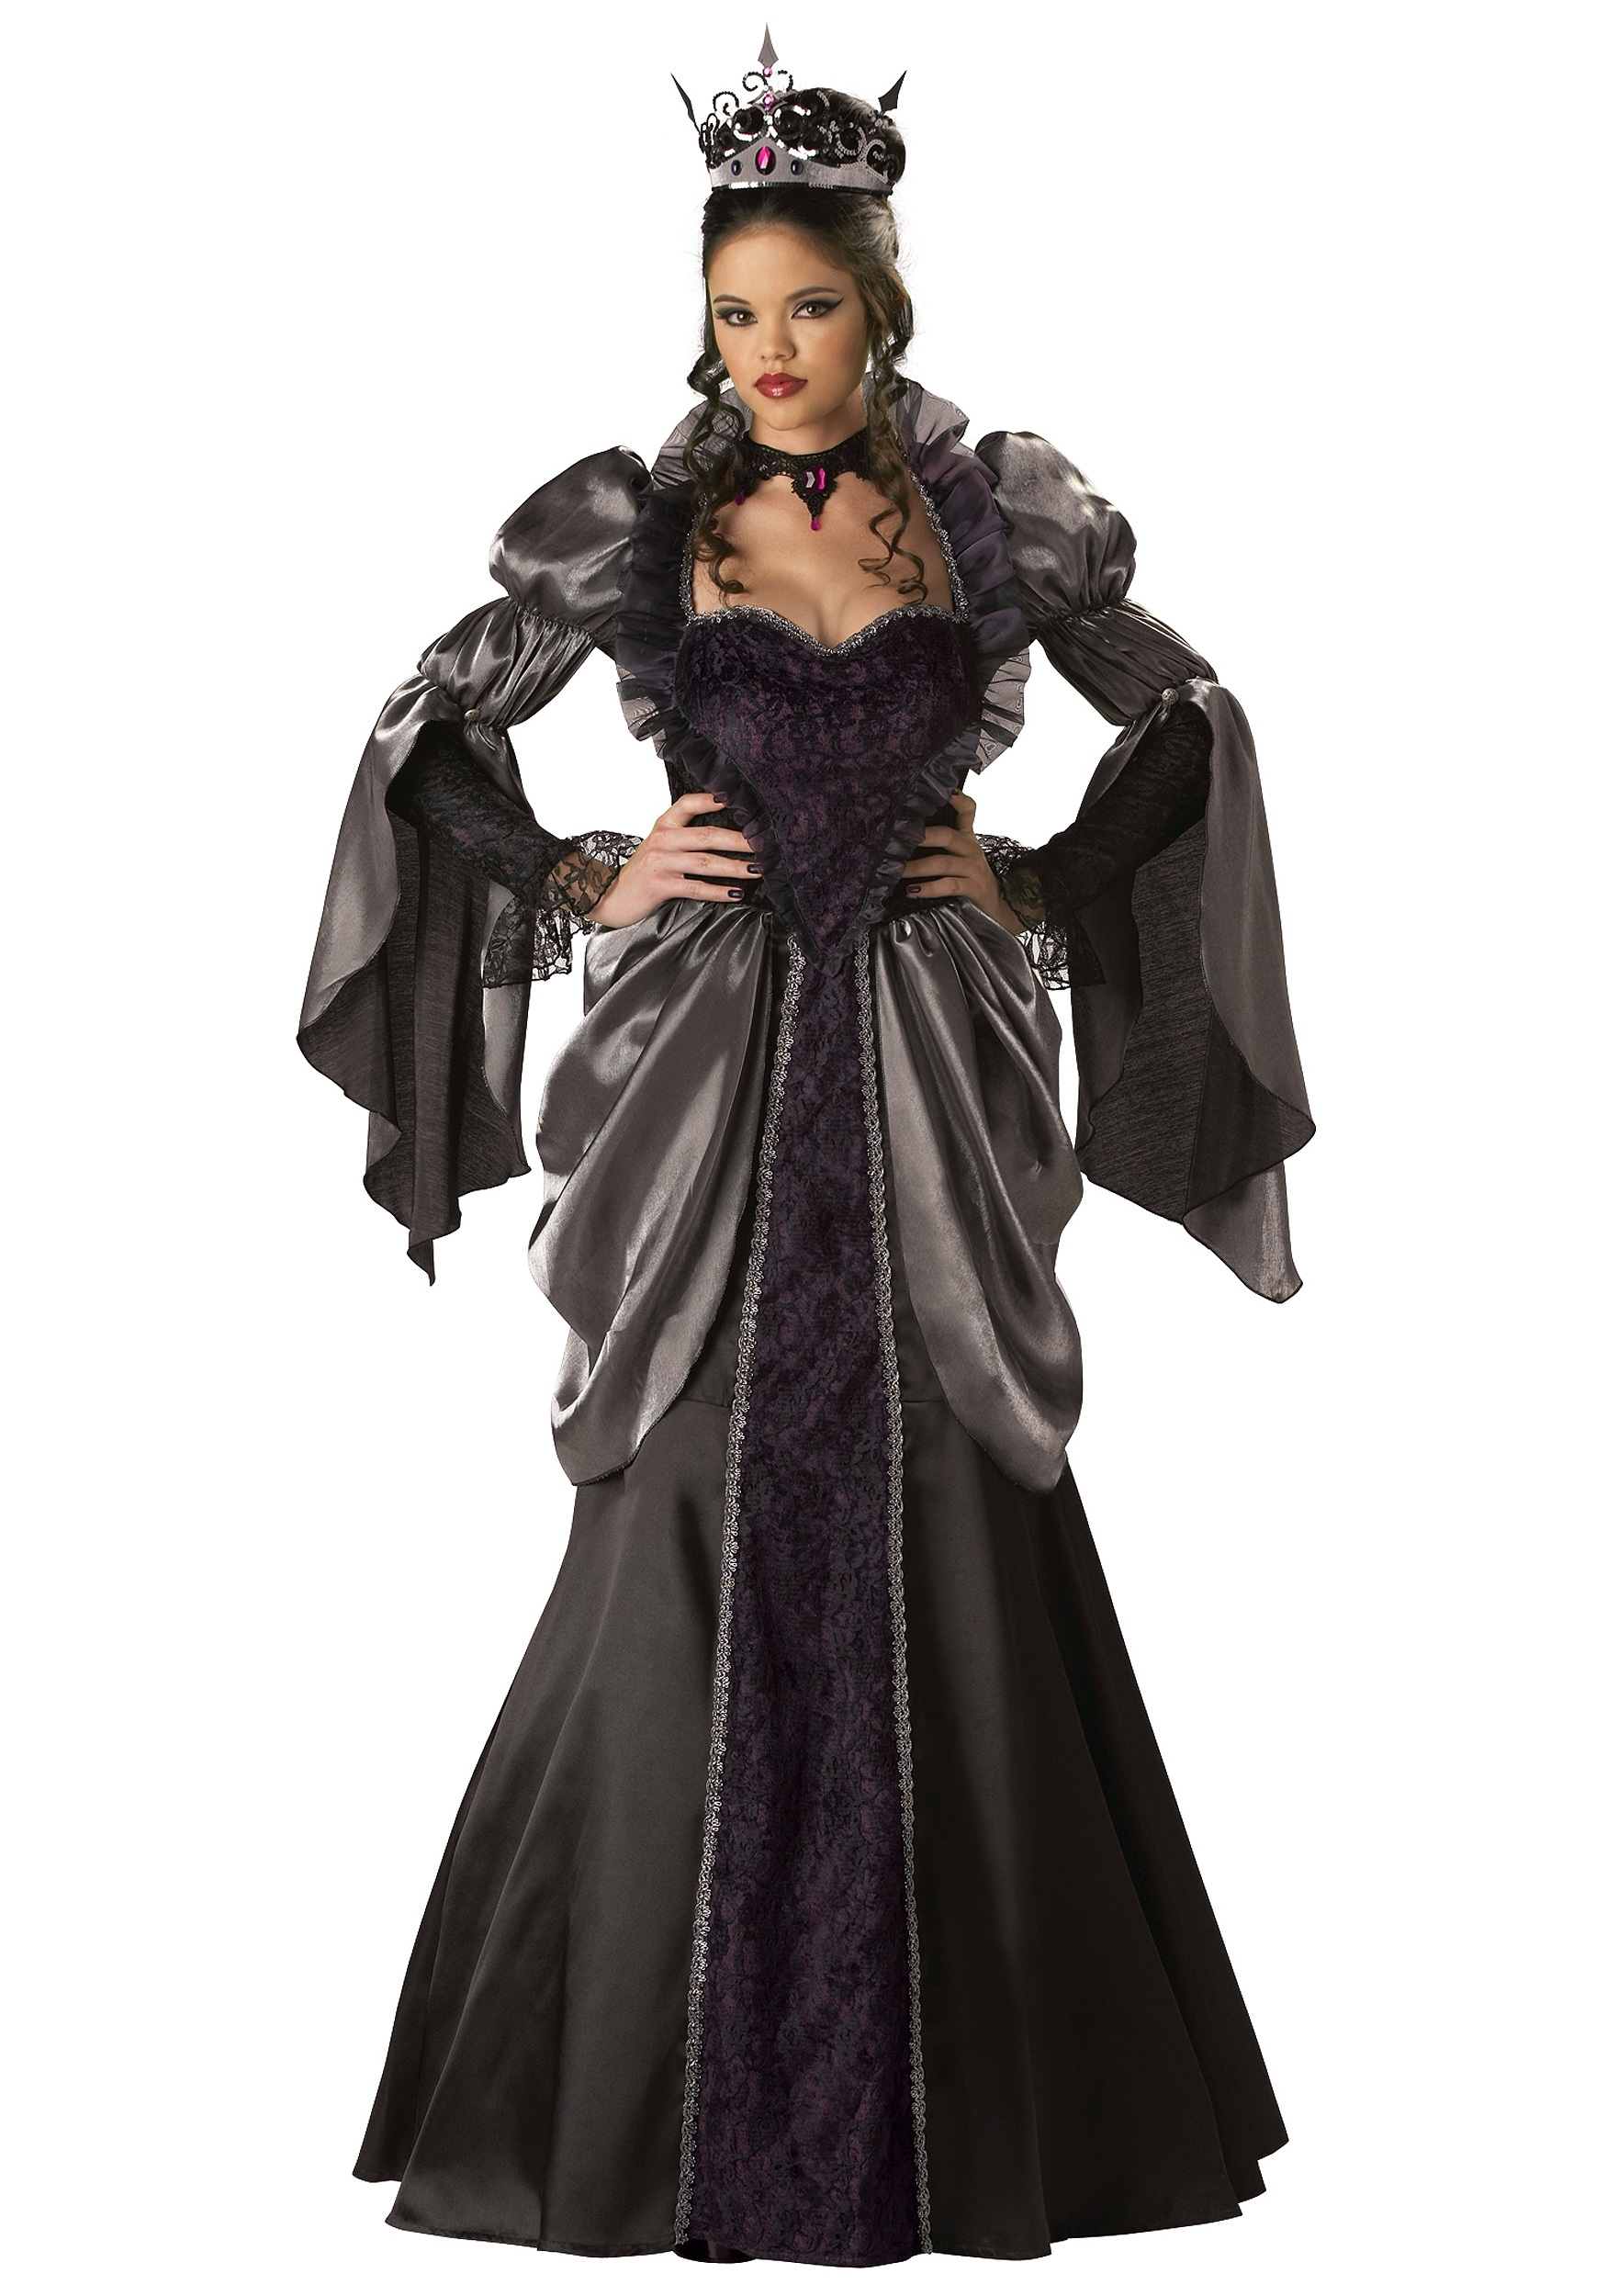 back toadult costumes disney costumes disney villains costumes king and queen costumes princess prince costumes sale costumes sleeping beauty